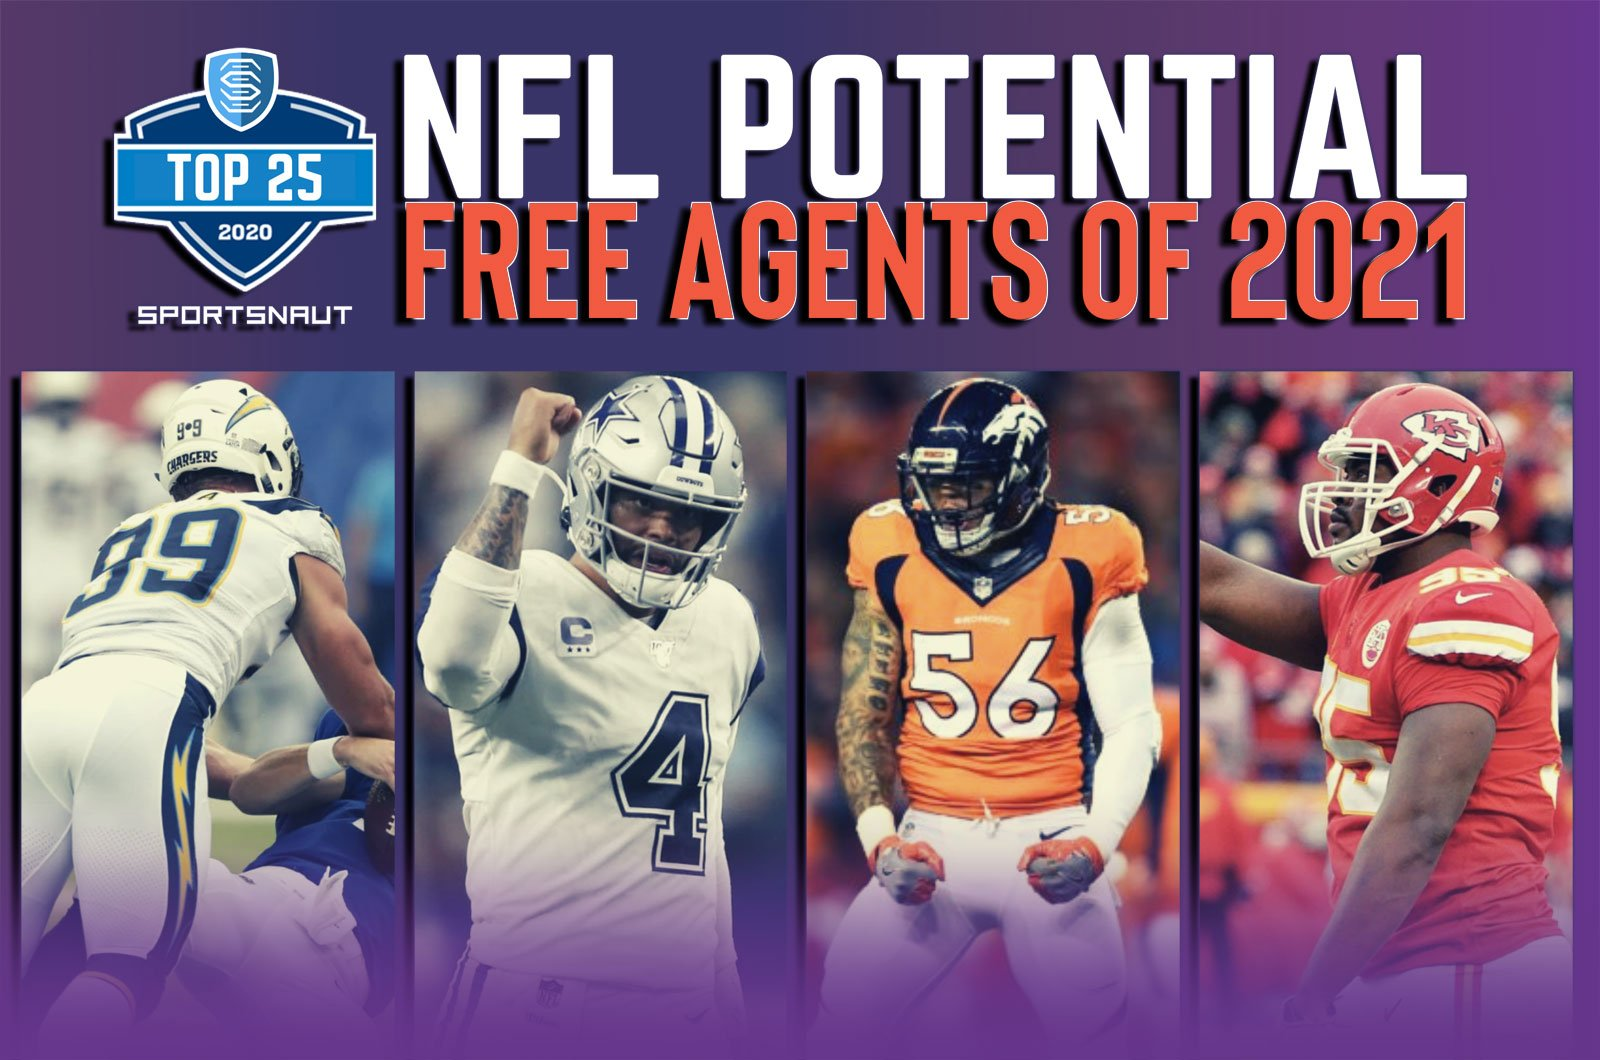 Best Free Agents Nfl 2021 Top 25 potential NFL free agents of 2021